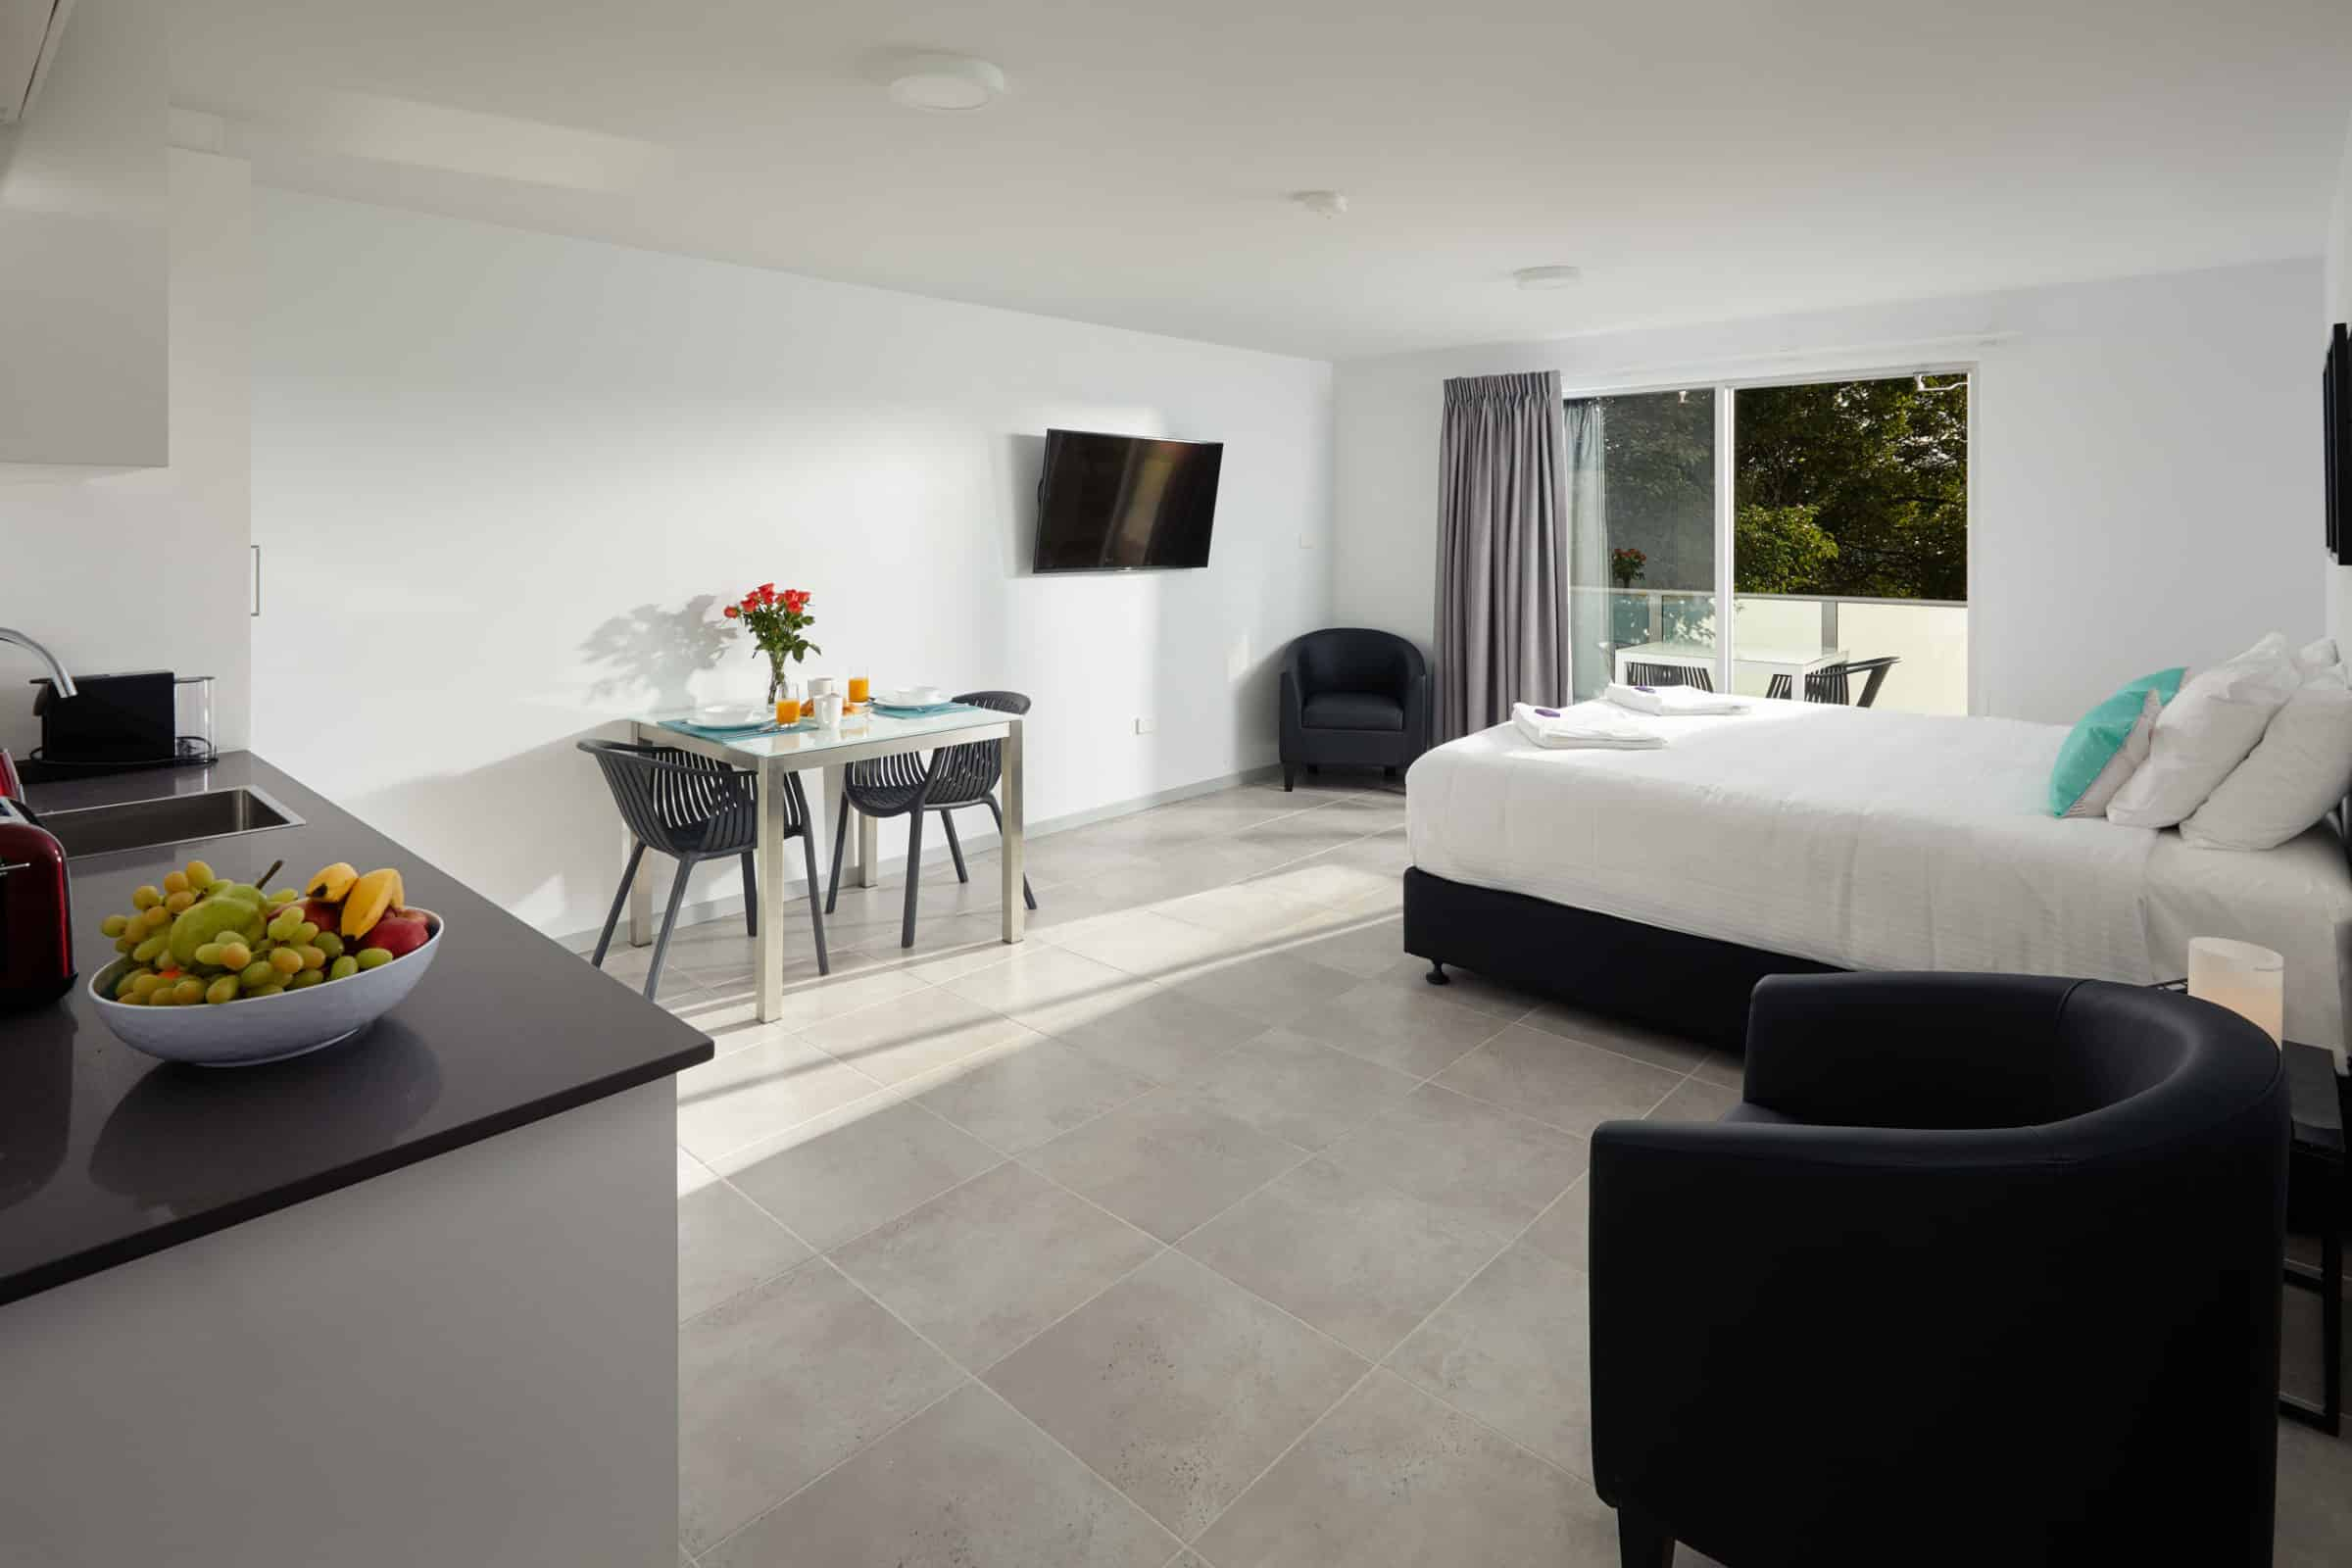 East Maitland Executive Apartments - https://www.newcastleapartments.com.au/wp-content/uploads/2020/03/living-room-1-scaled.jpg